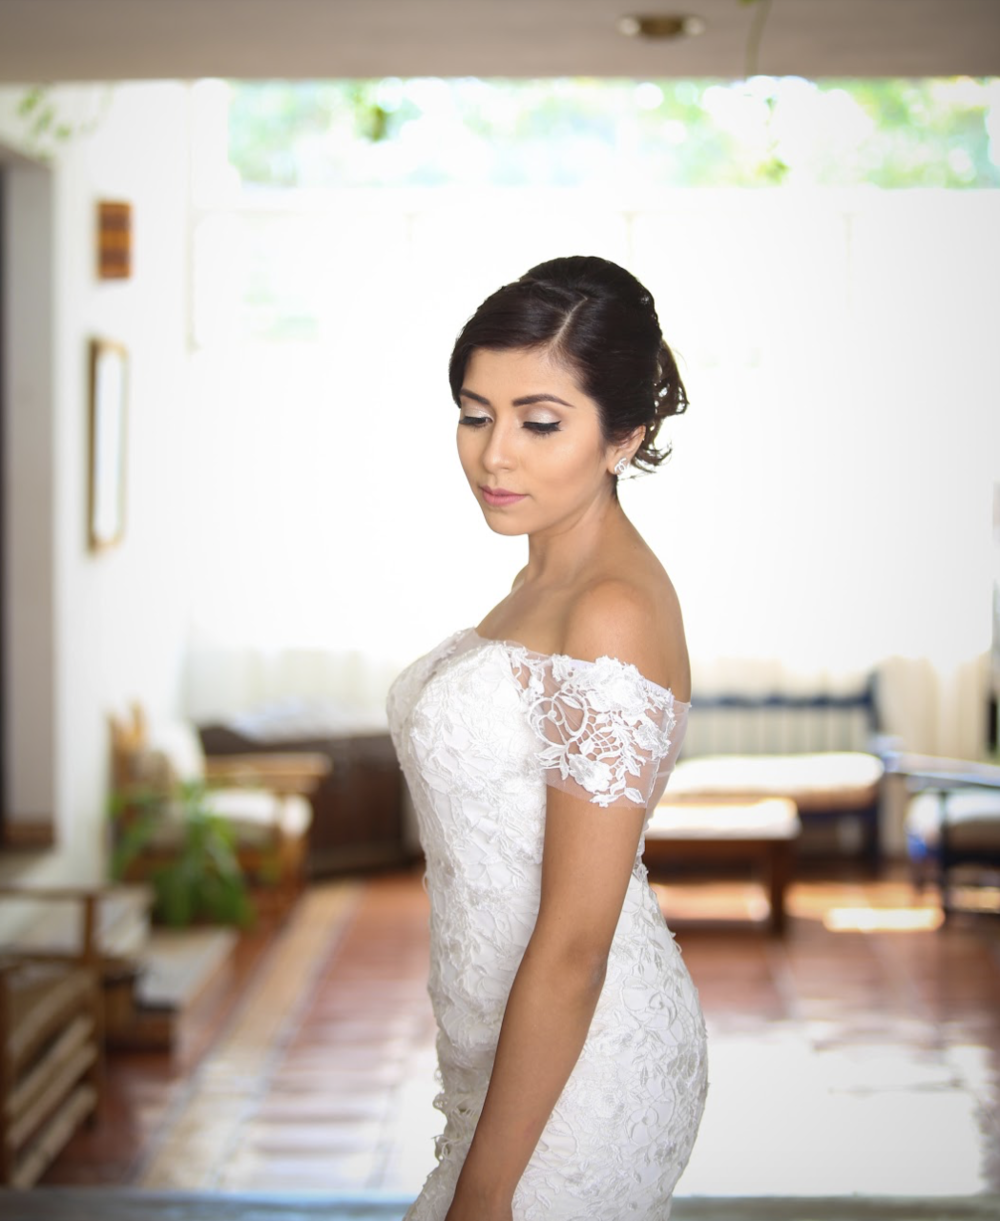 Real Bride: Silvia (Dress: Silvia, off-the-shoulder sleeves, mermaid, tulle skirt)